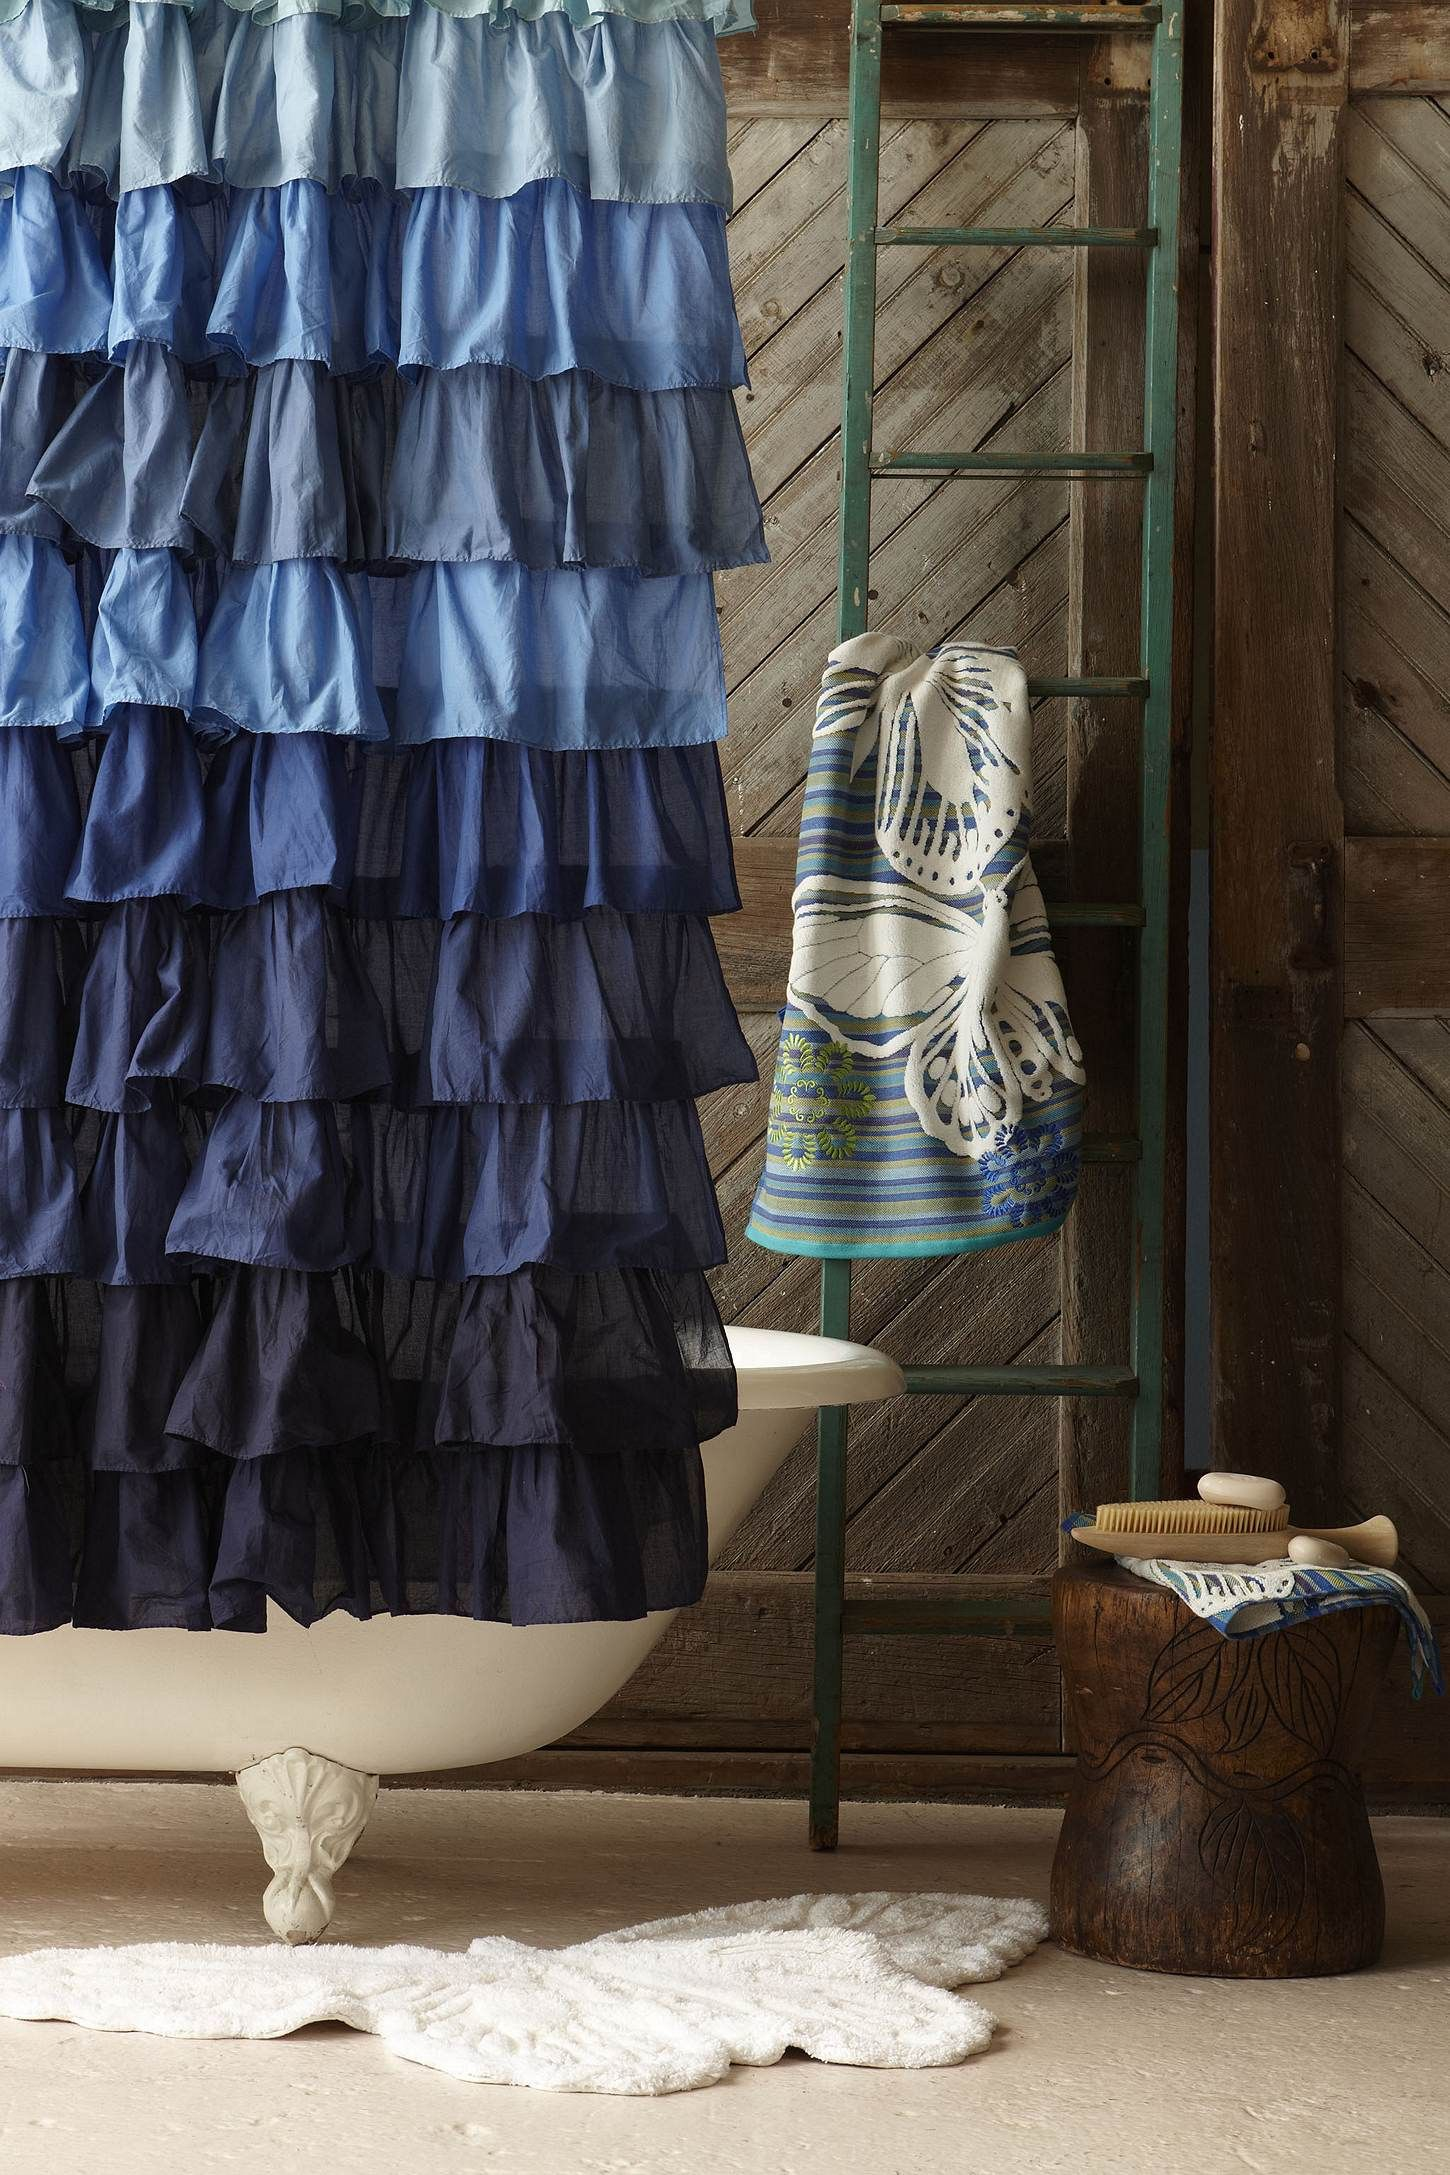 Loving These Colorful Ruffled Shower Curtains From Anthropologie Ruffles My Feathers